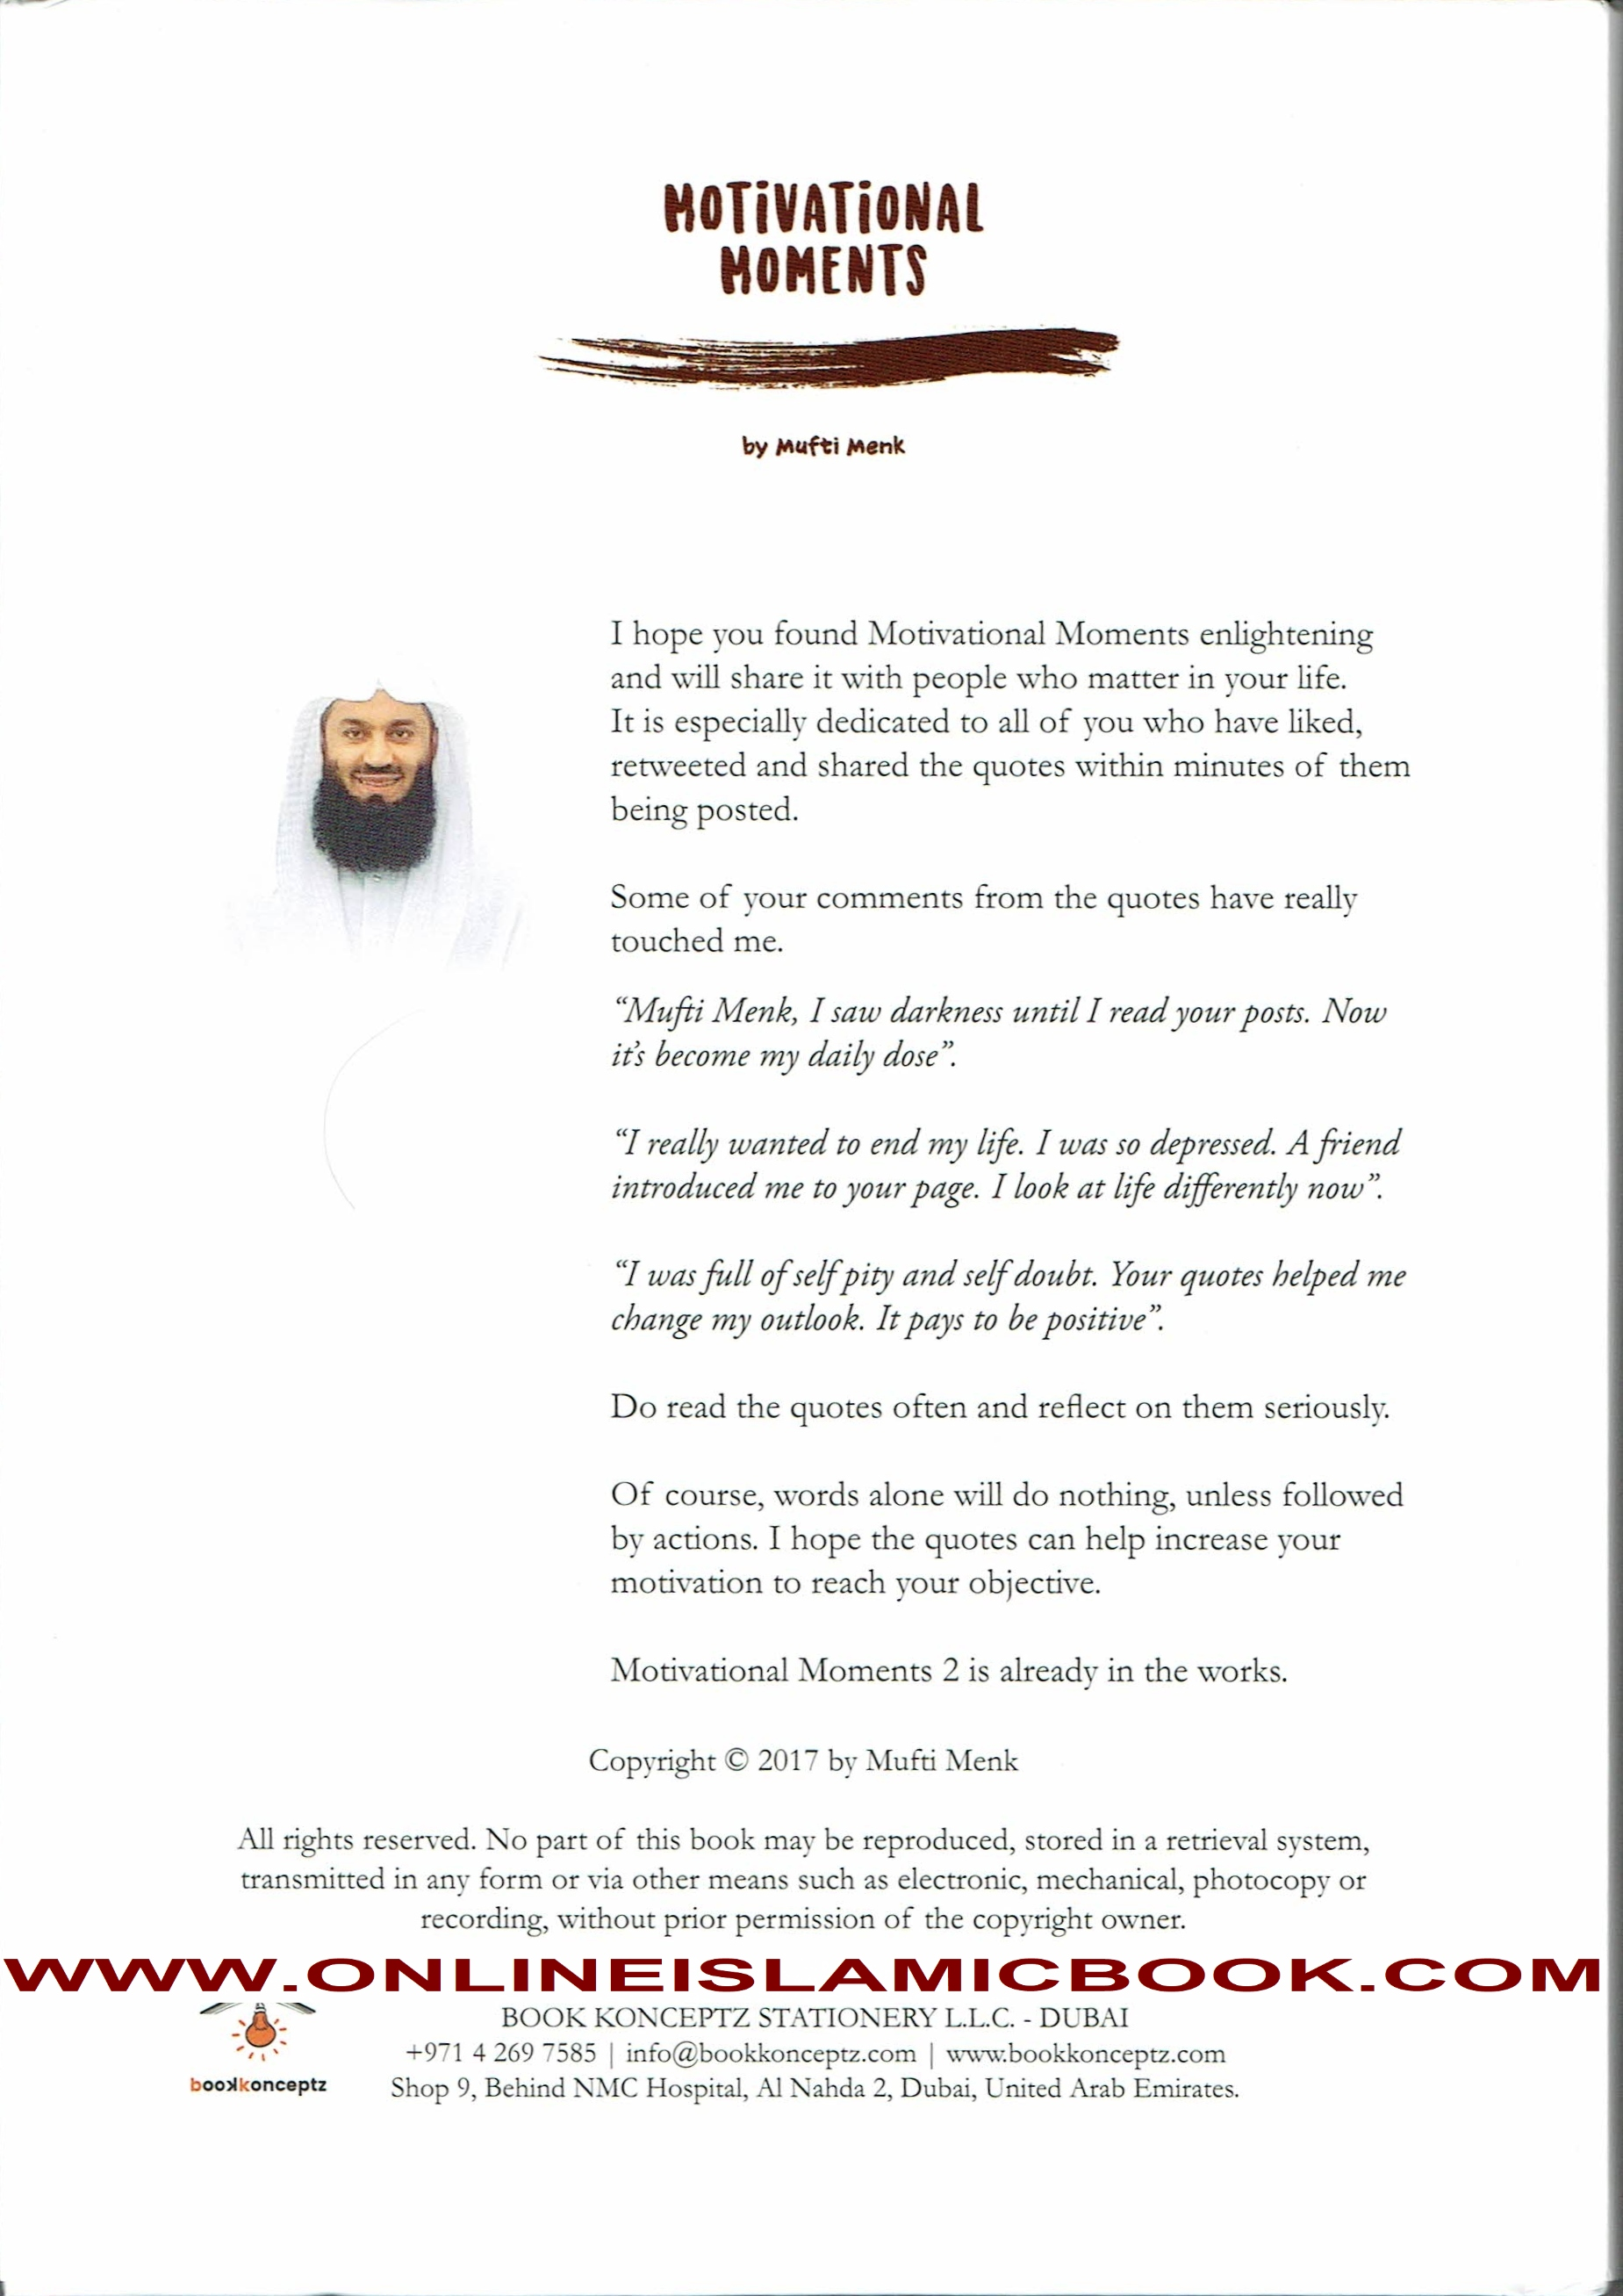 motivational-moments-by-mufti-menk-2-.jpg